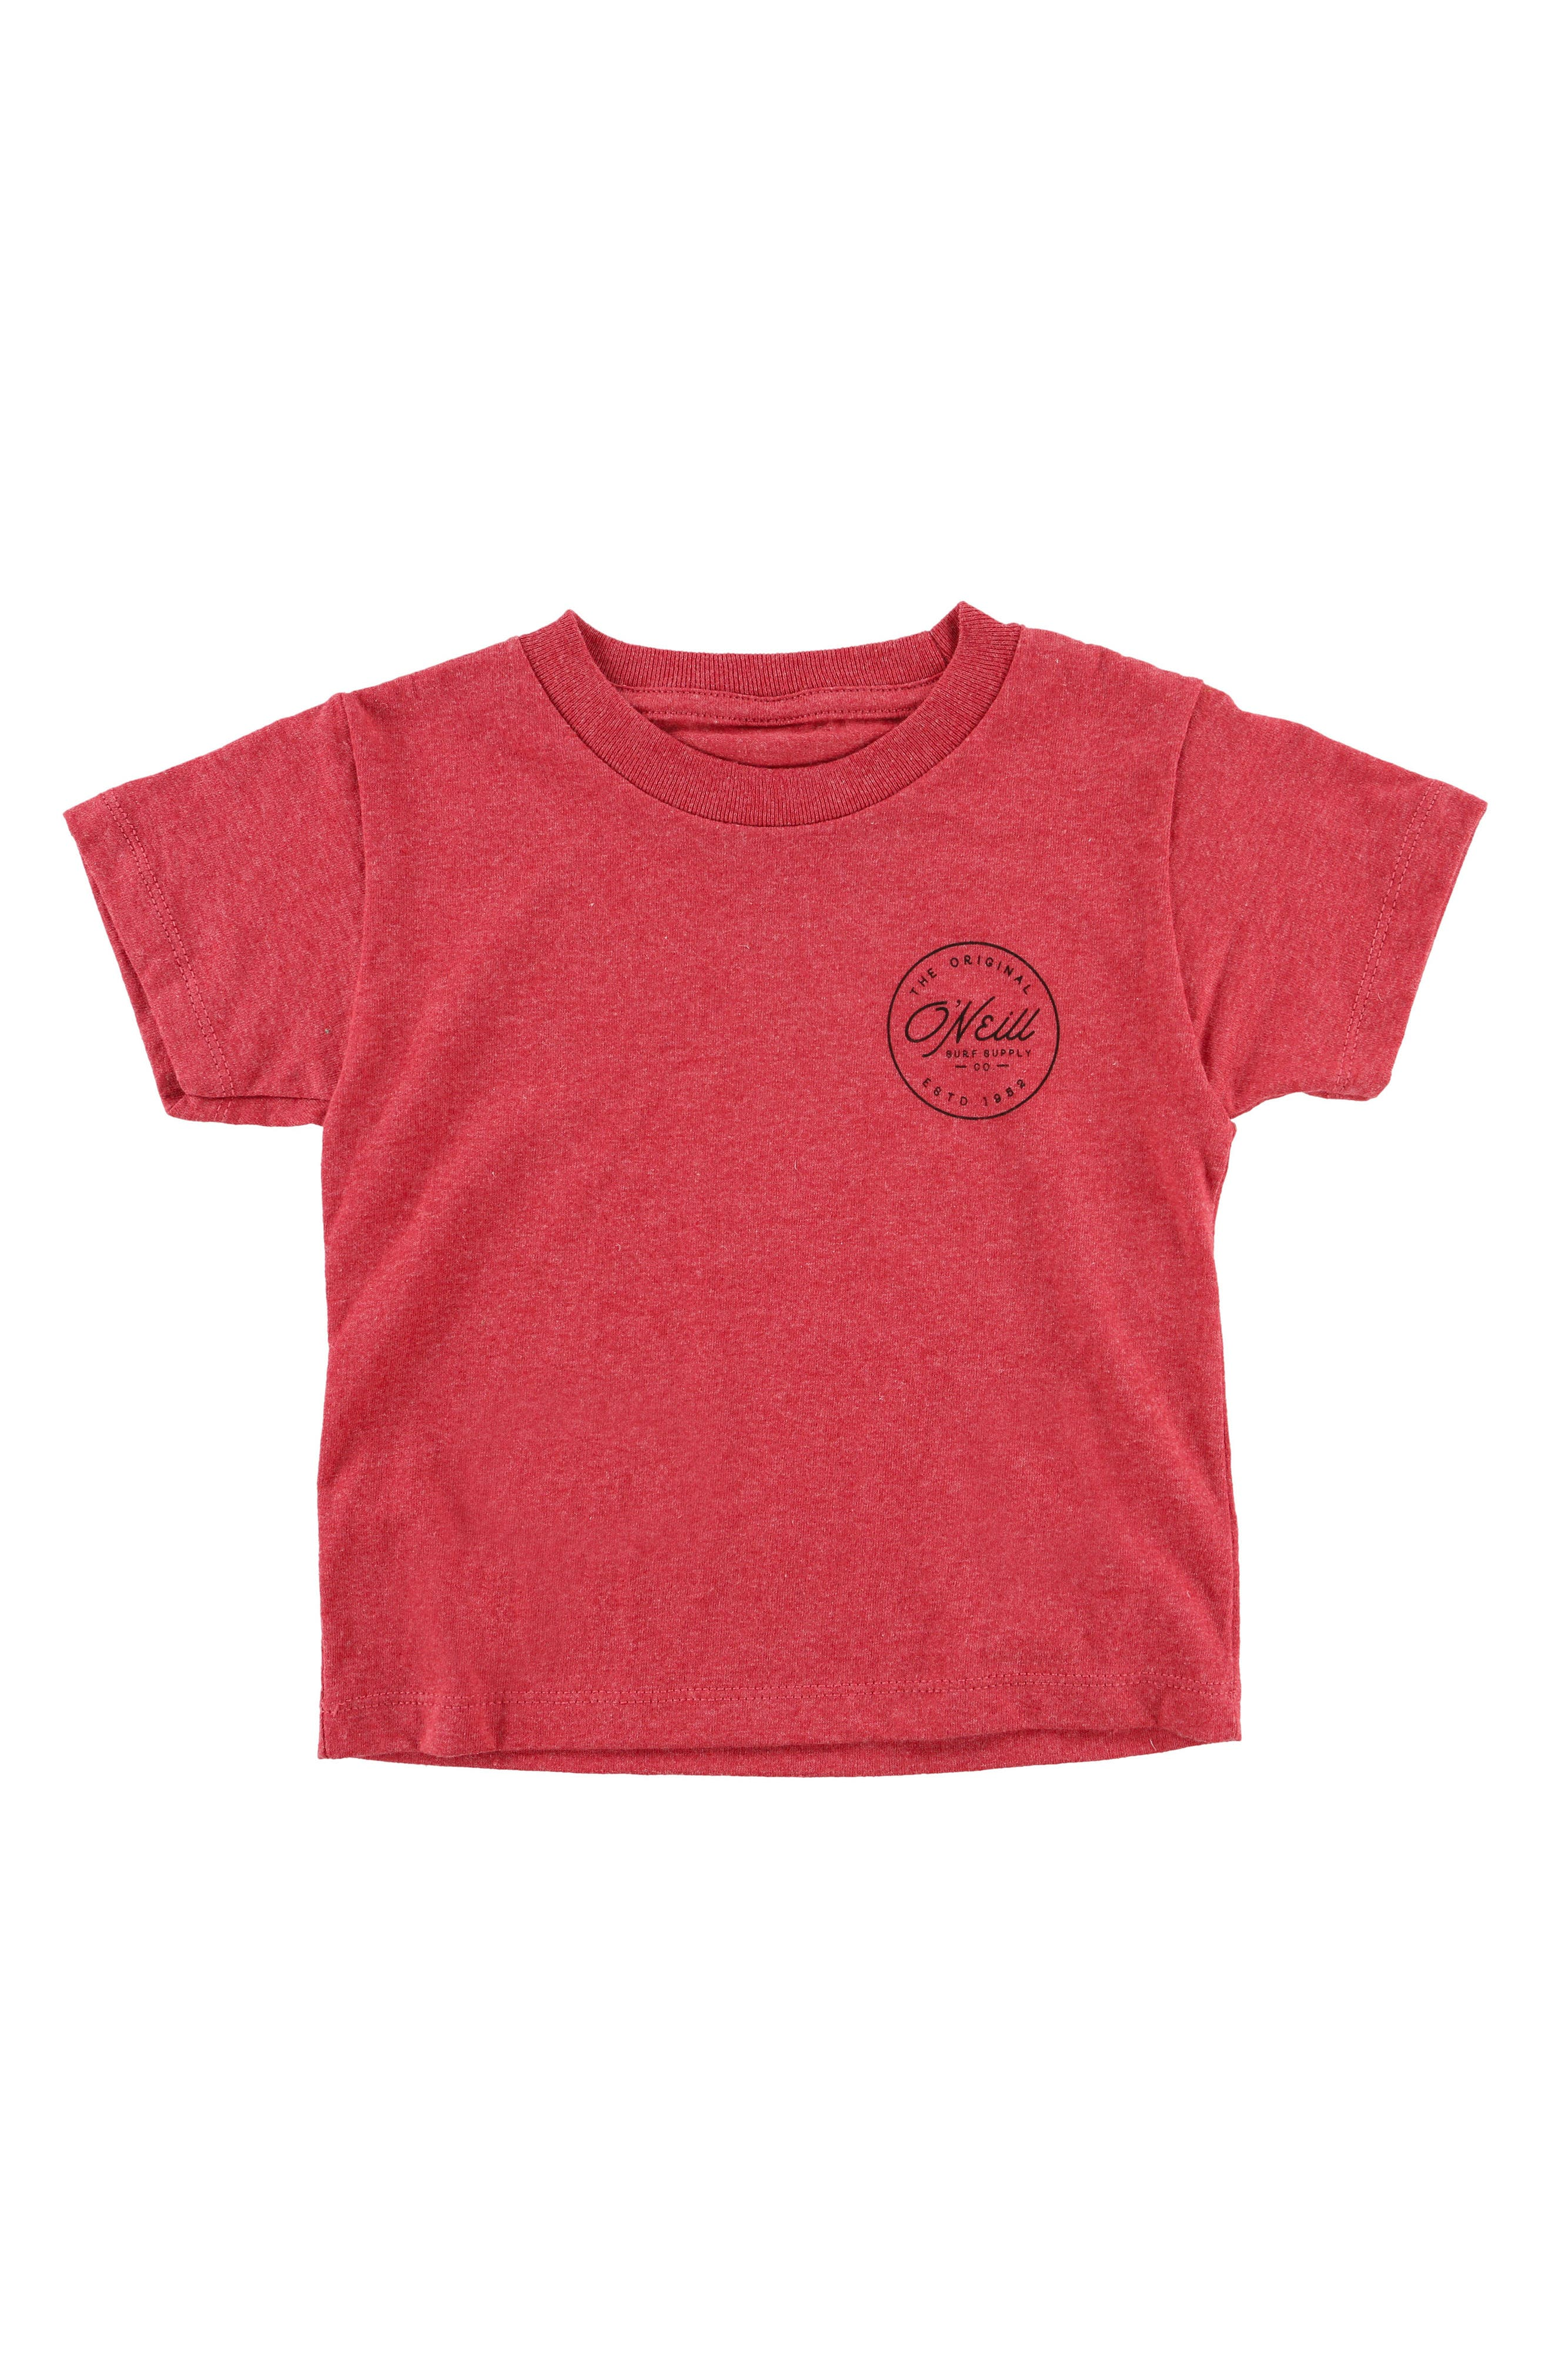 Makers T-Shirt,                         Main,                         color, Heather Red